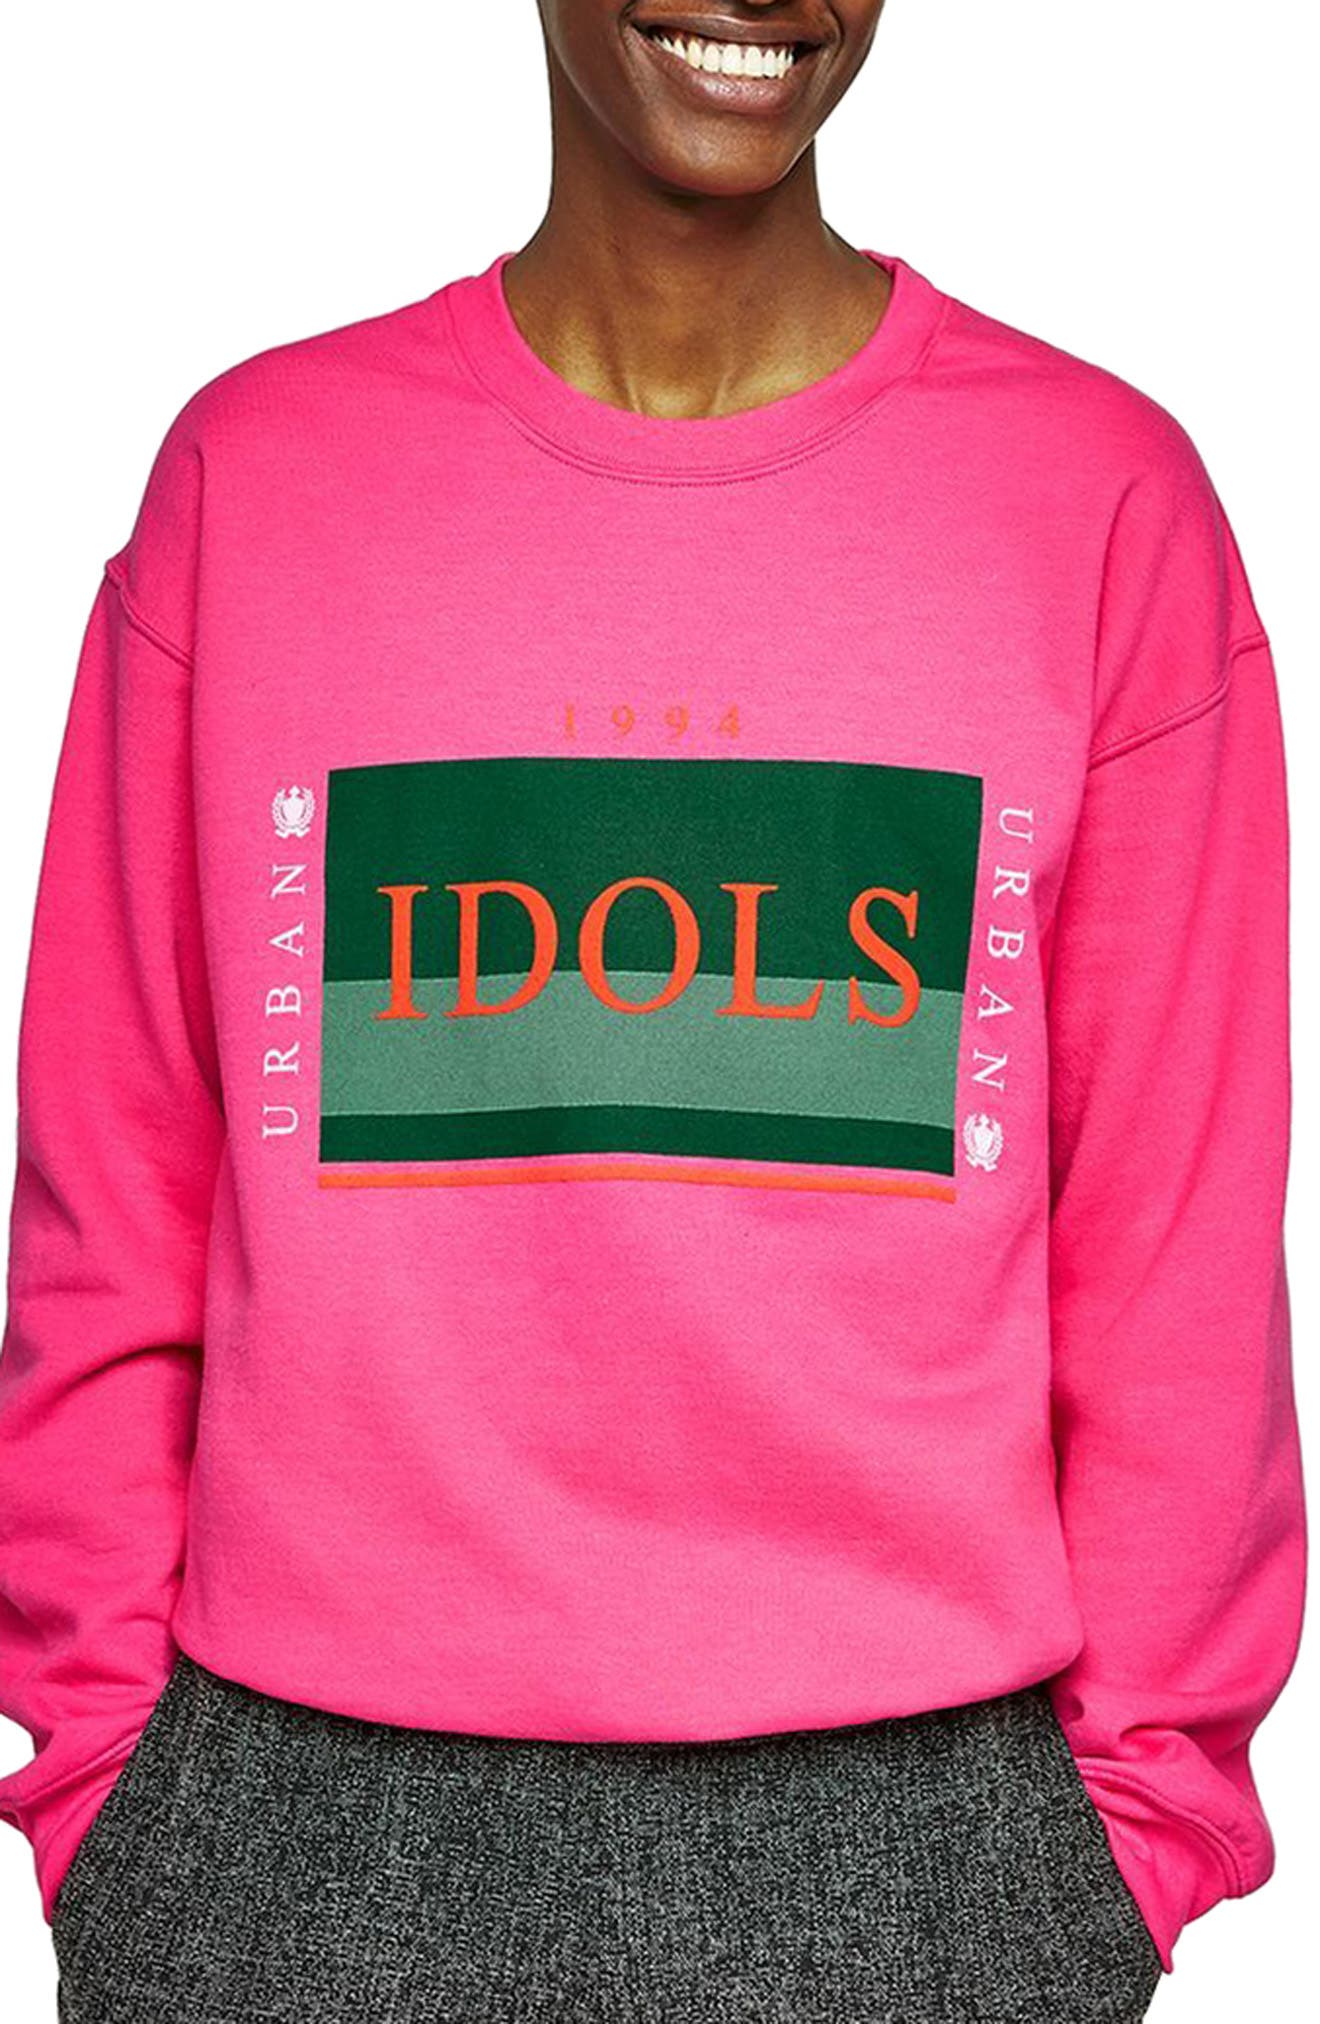 Main Image - Topman Urban Idols Graphic Sweatshirt